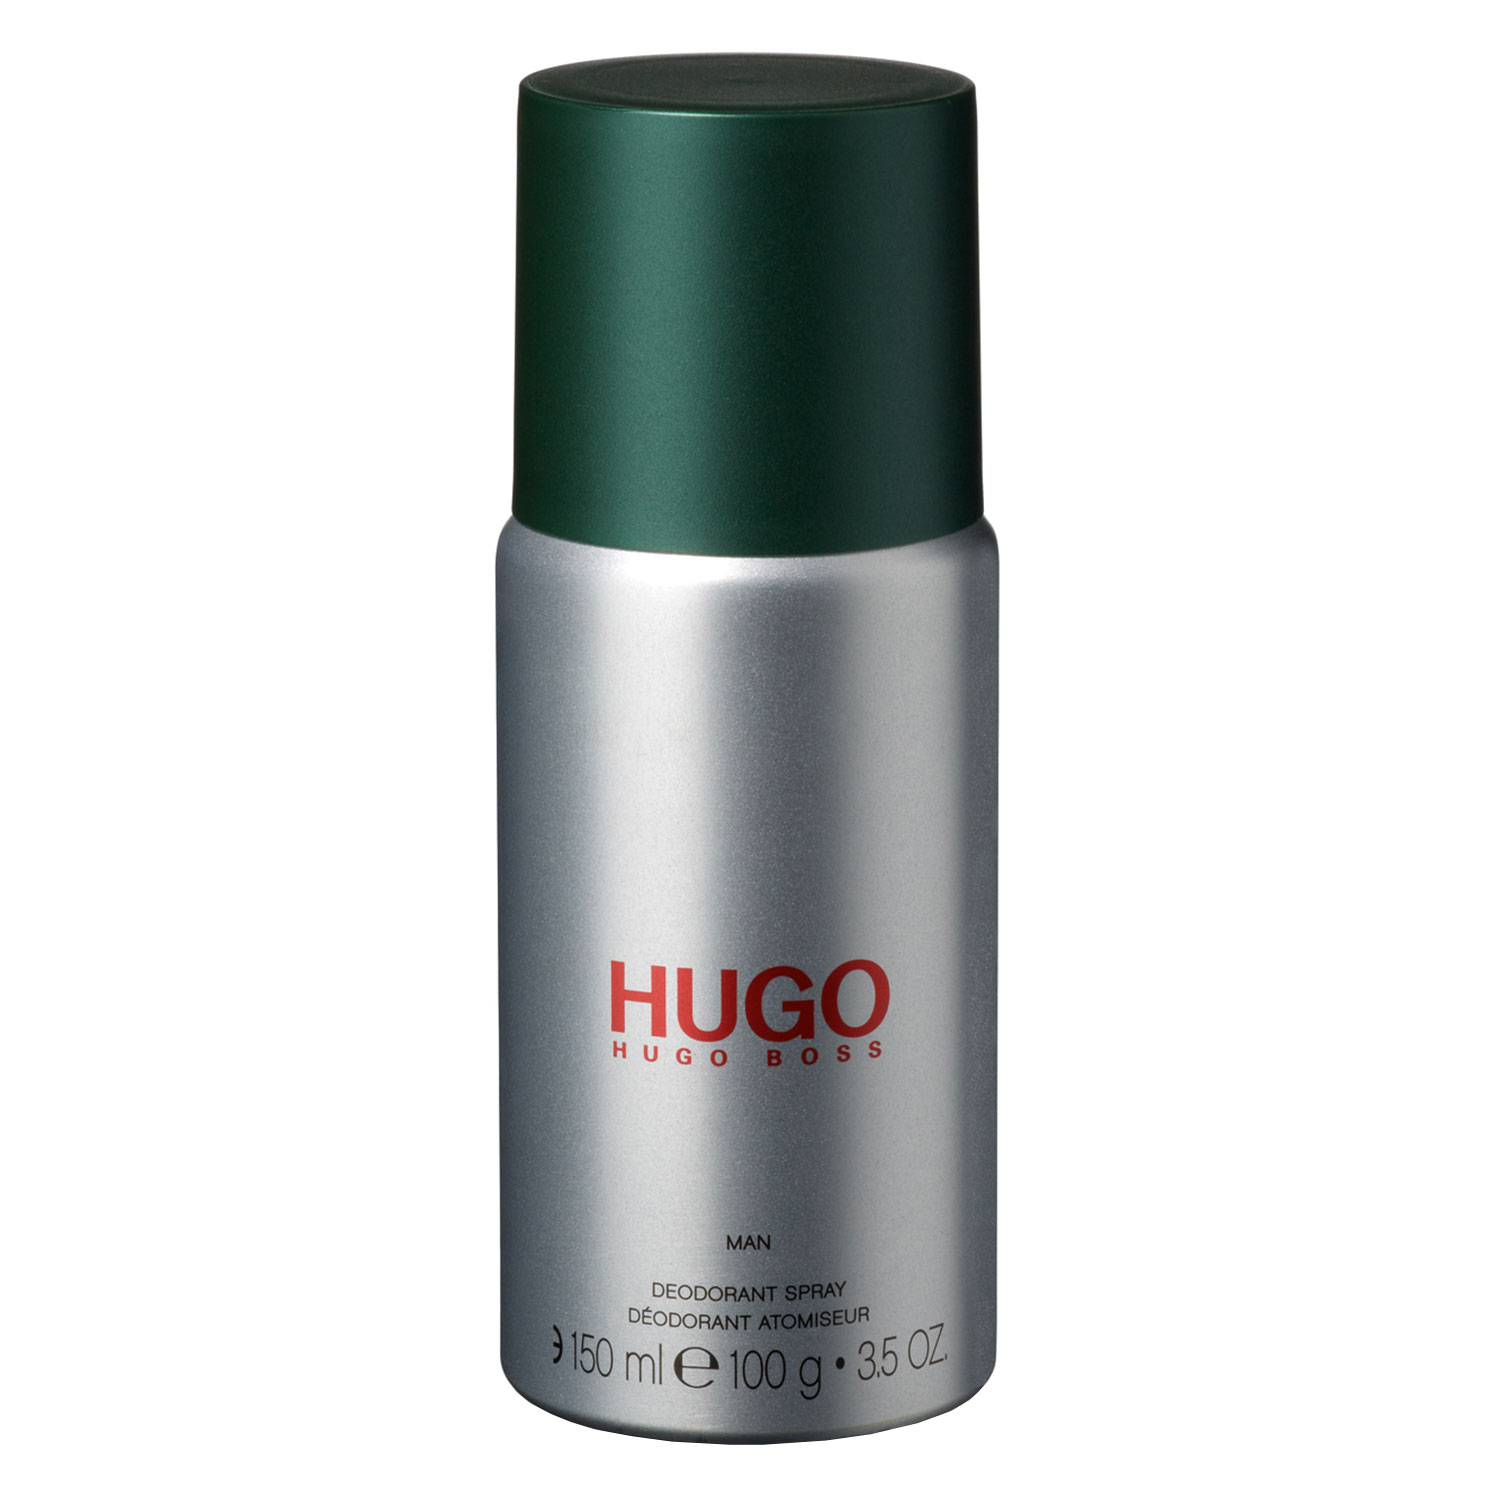 Hugo Boss Man - Deodorant Spray